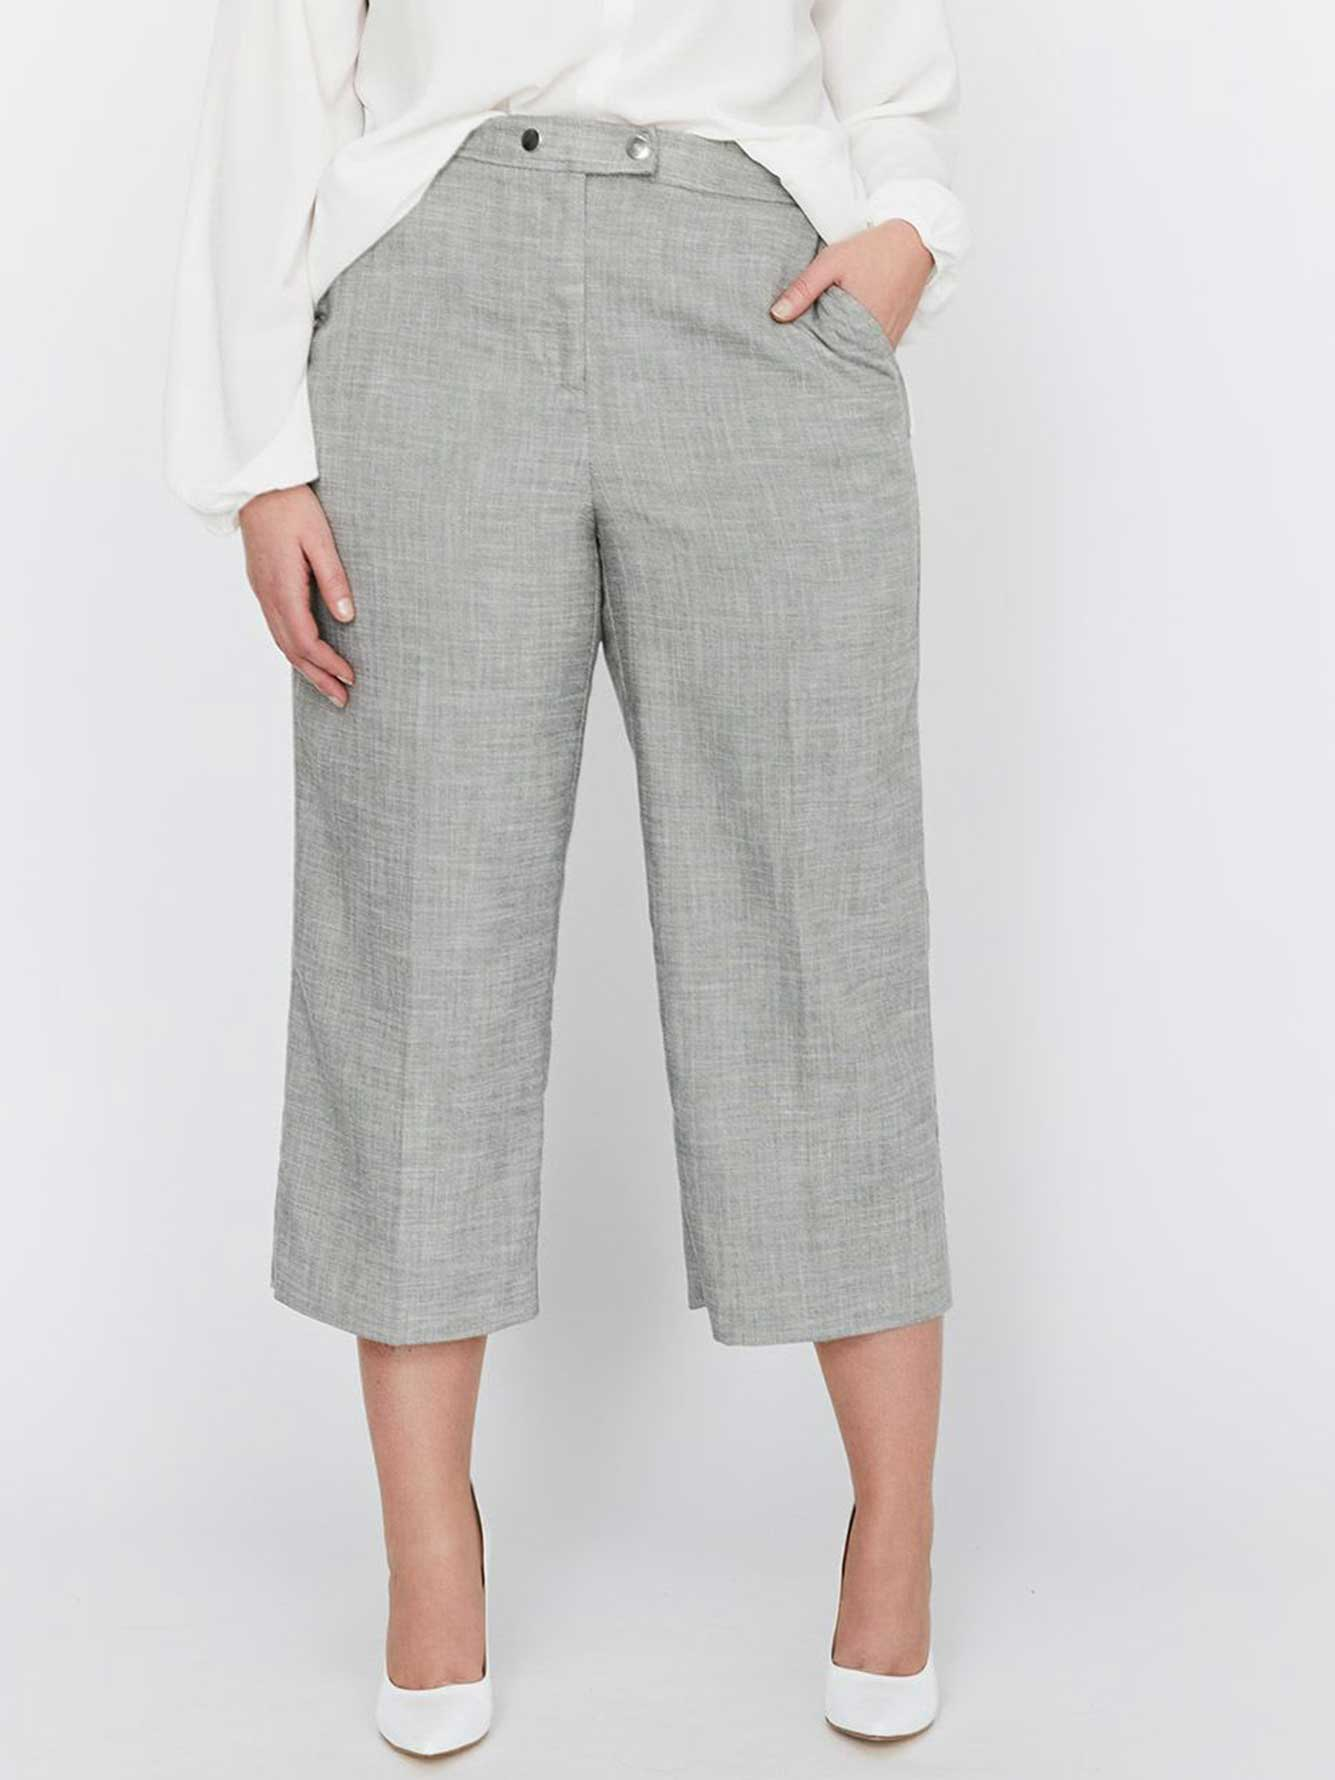 92d34aaebd4 Michel Studio Wide Leg Cropped Pant